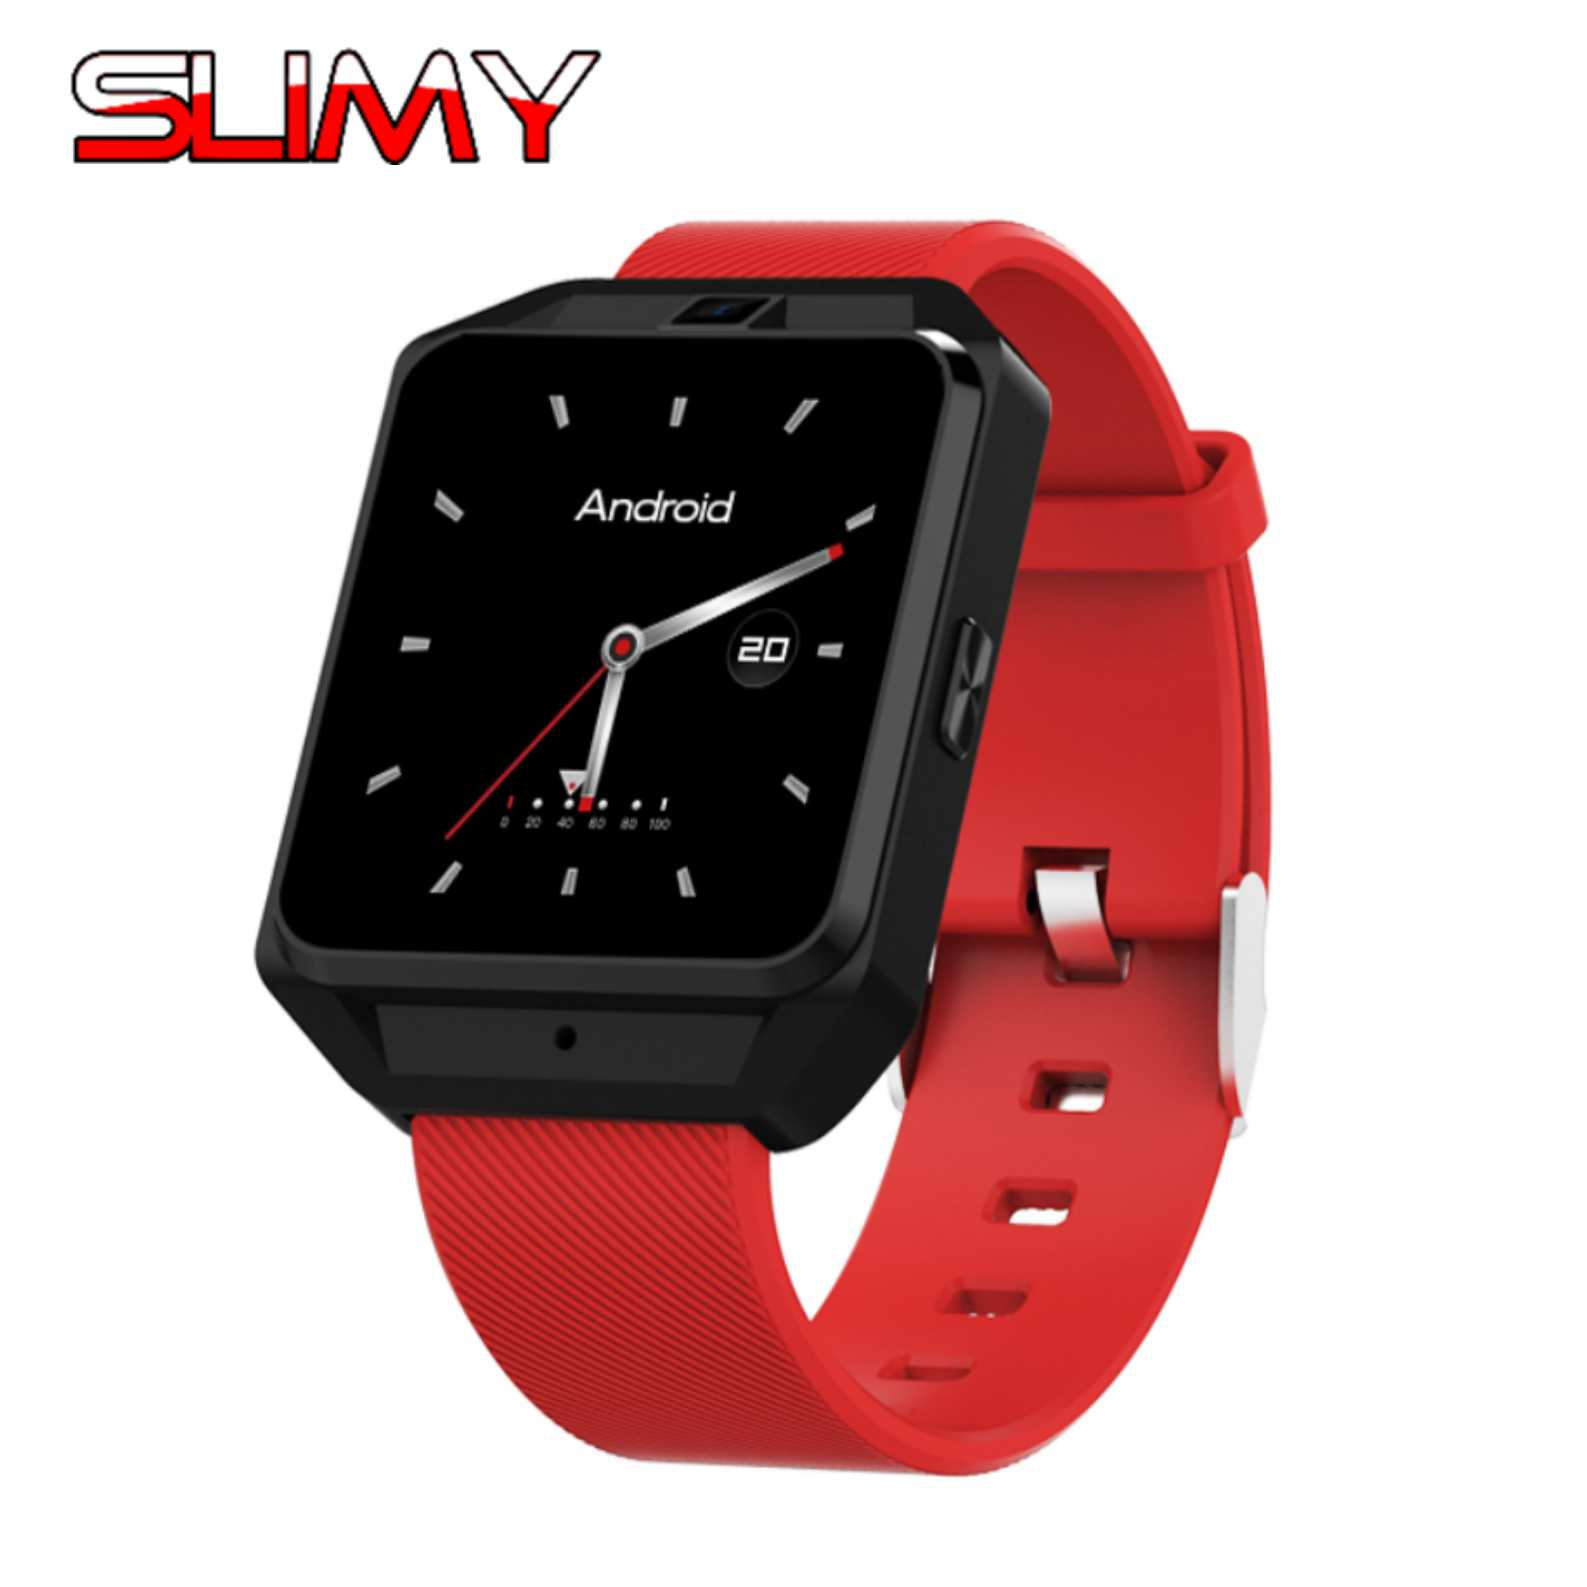 Slimy 4G Smart Watch Android 6.0 MTK6737 Quad Core 1GB/8GB Smartwatch Phone with Heart Rate Sim Card GPS Wifi Camera Watch smart watch smartwatch dm368 1 39 amoled display quad core bluetooth4 heart rate monitor wristwatch ios android phones pk k8